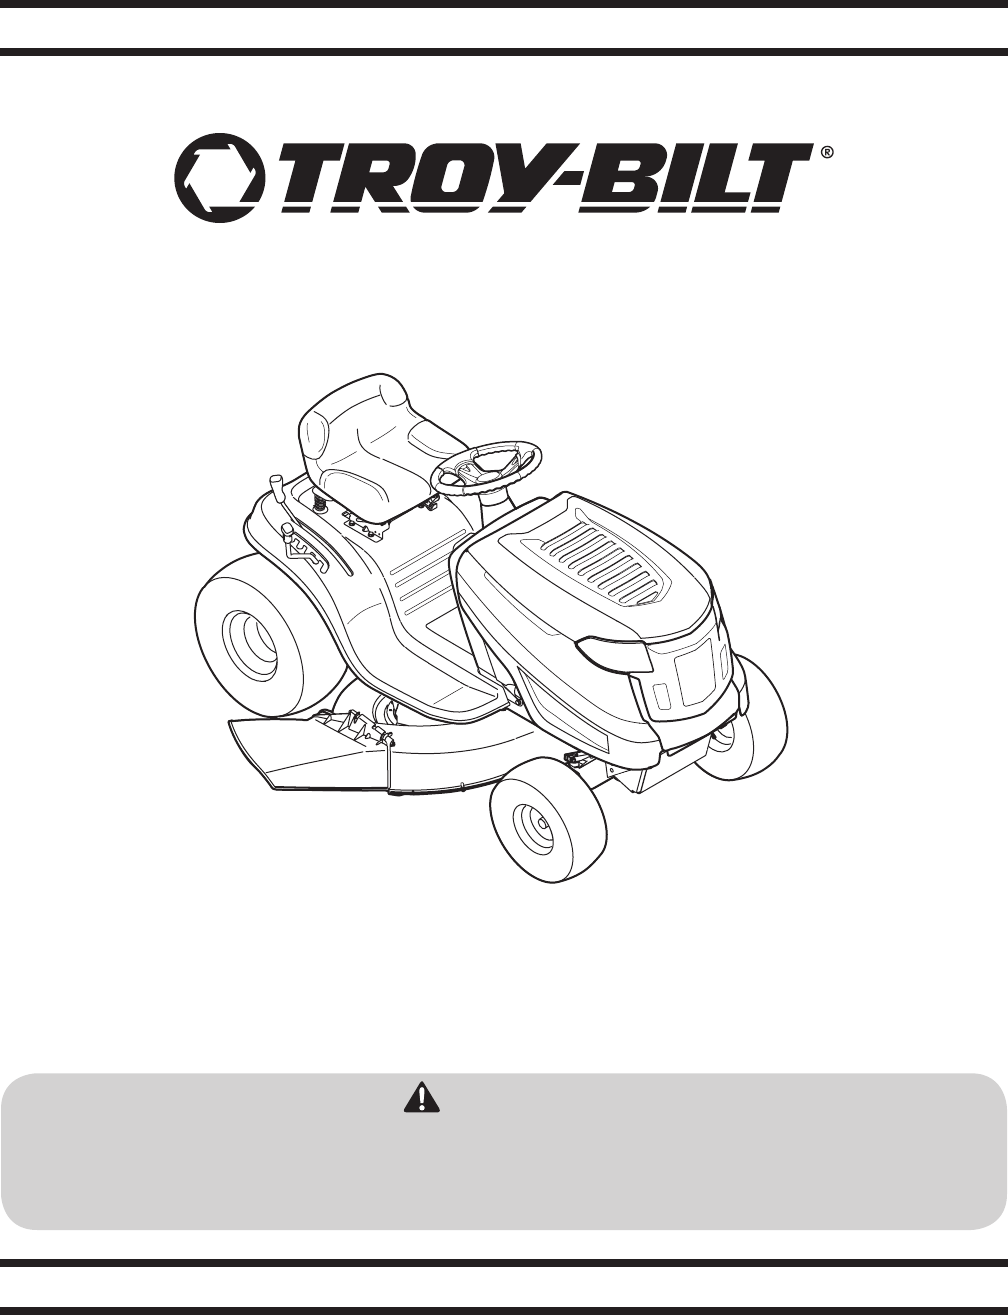 db042c77 6e1d 4fb4 d59e 0d09fe5b1070 bg1 troy bilt lawn mower pony user guide manualsonline com troy bilt pony wiring schematics at n-0.co